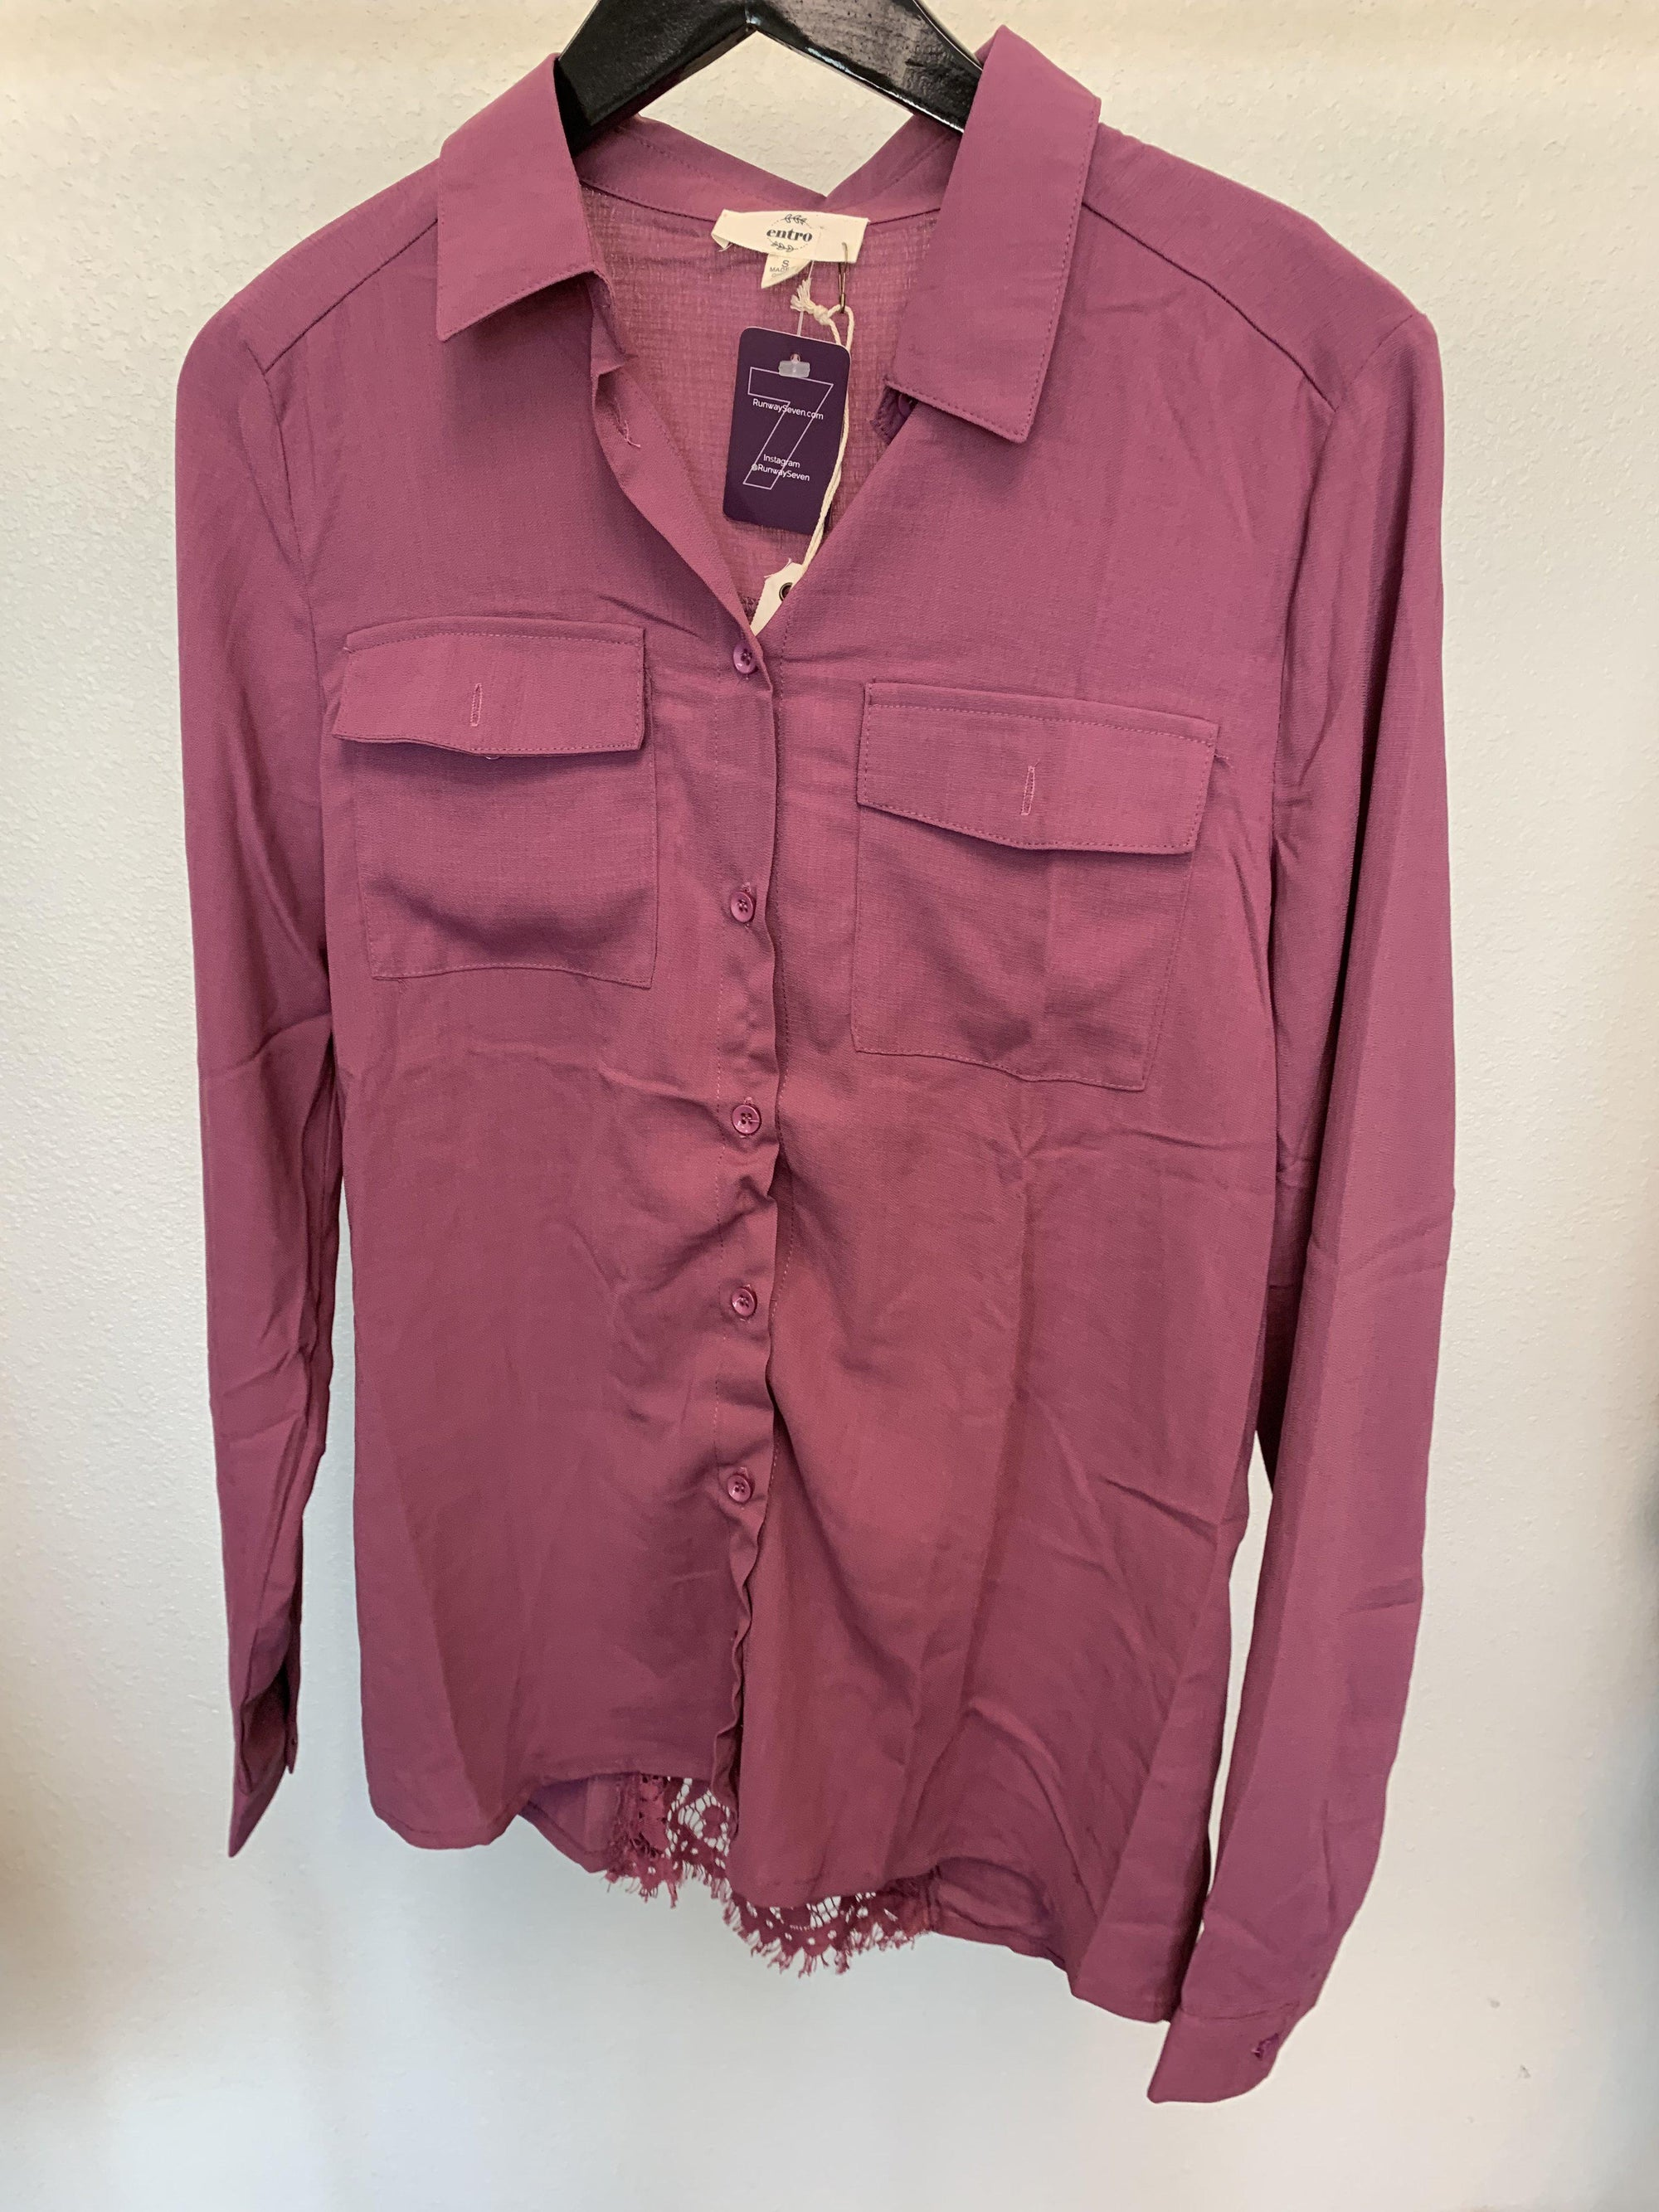 Mauve Madness Top-Women's SALE-New Arrivals-Runway Seven